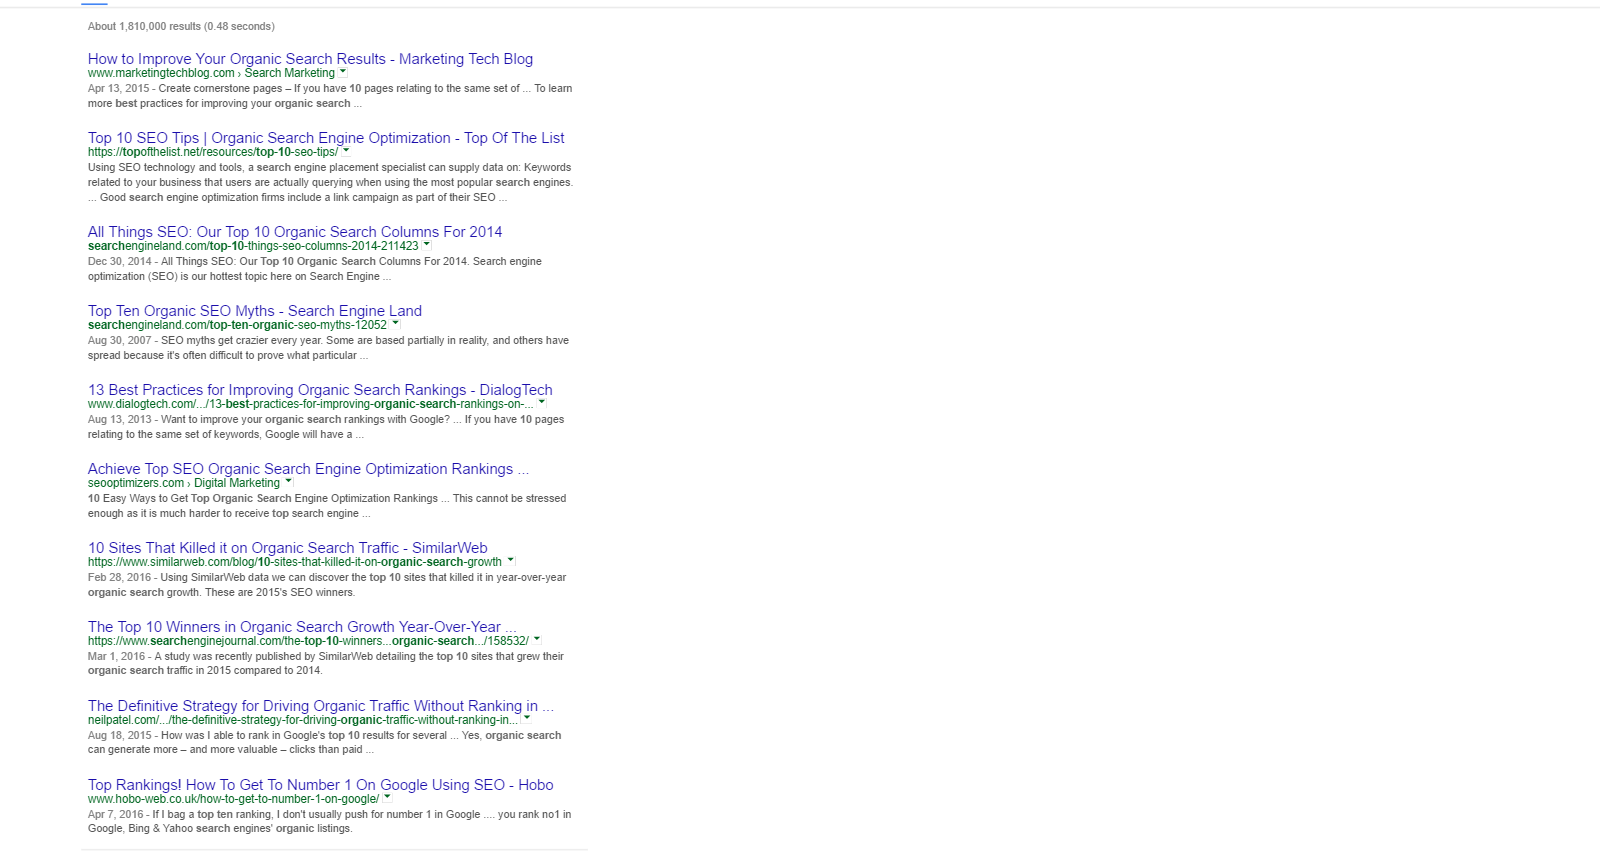 Organic search ranking is the 10 spots that are below the ads on mobile and desktop.PNG